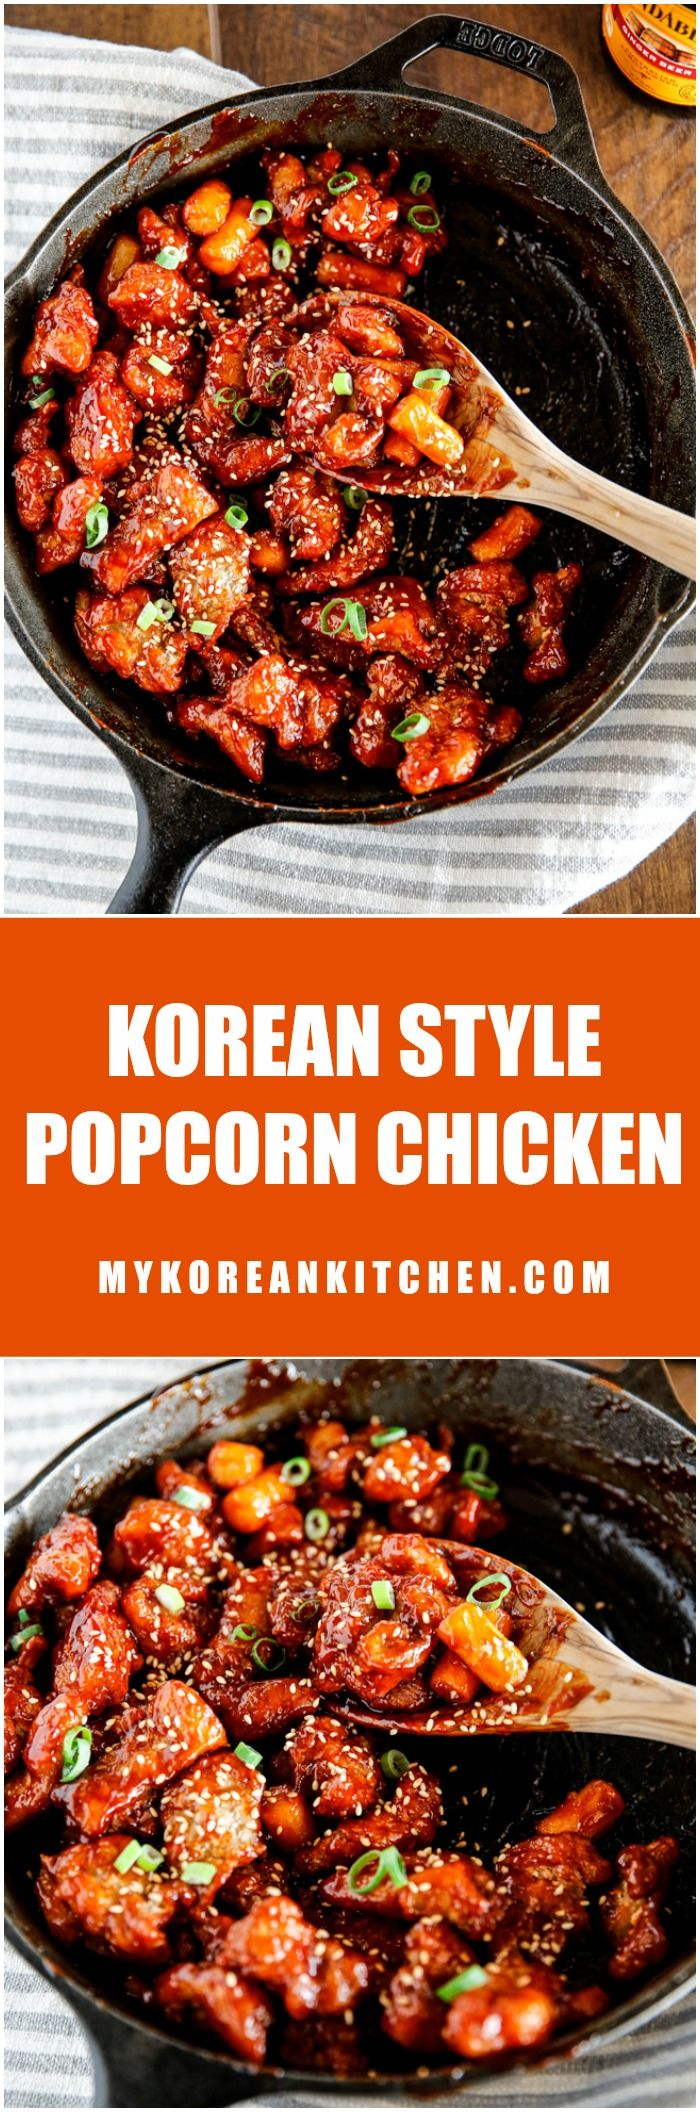 Crispy and sticky Korean style popcorn chicken